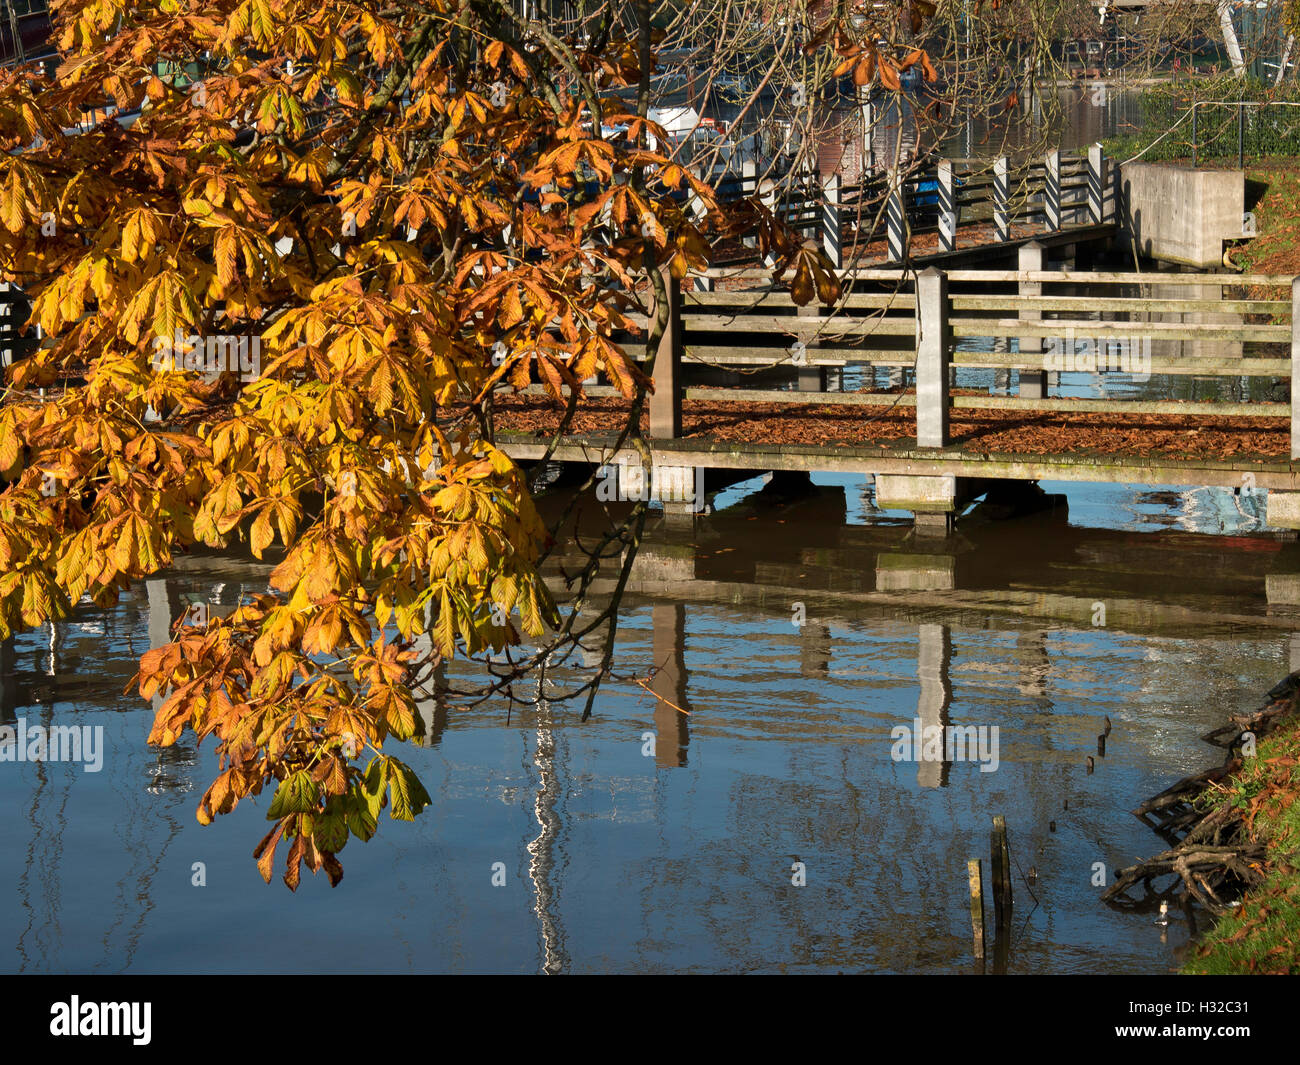 the city of leer in frisia - Stock Image